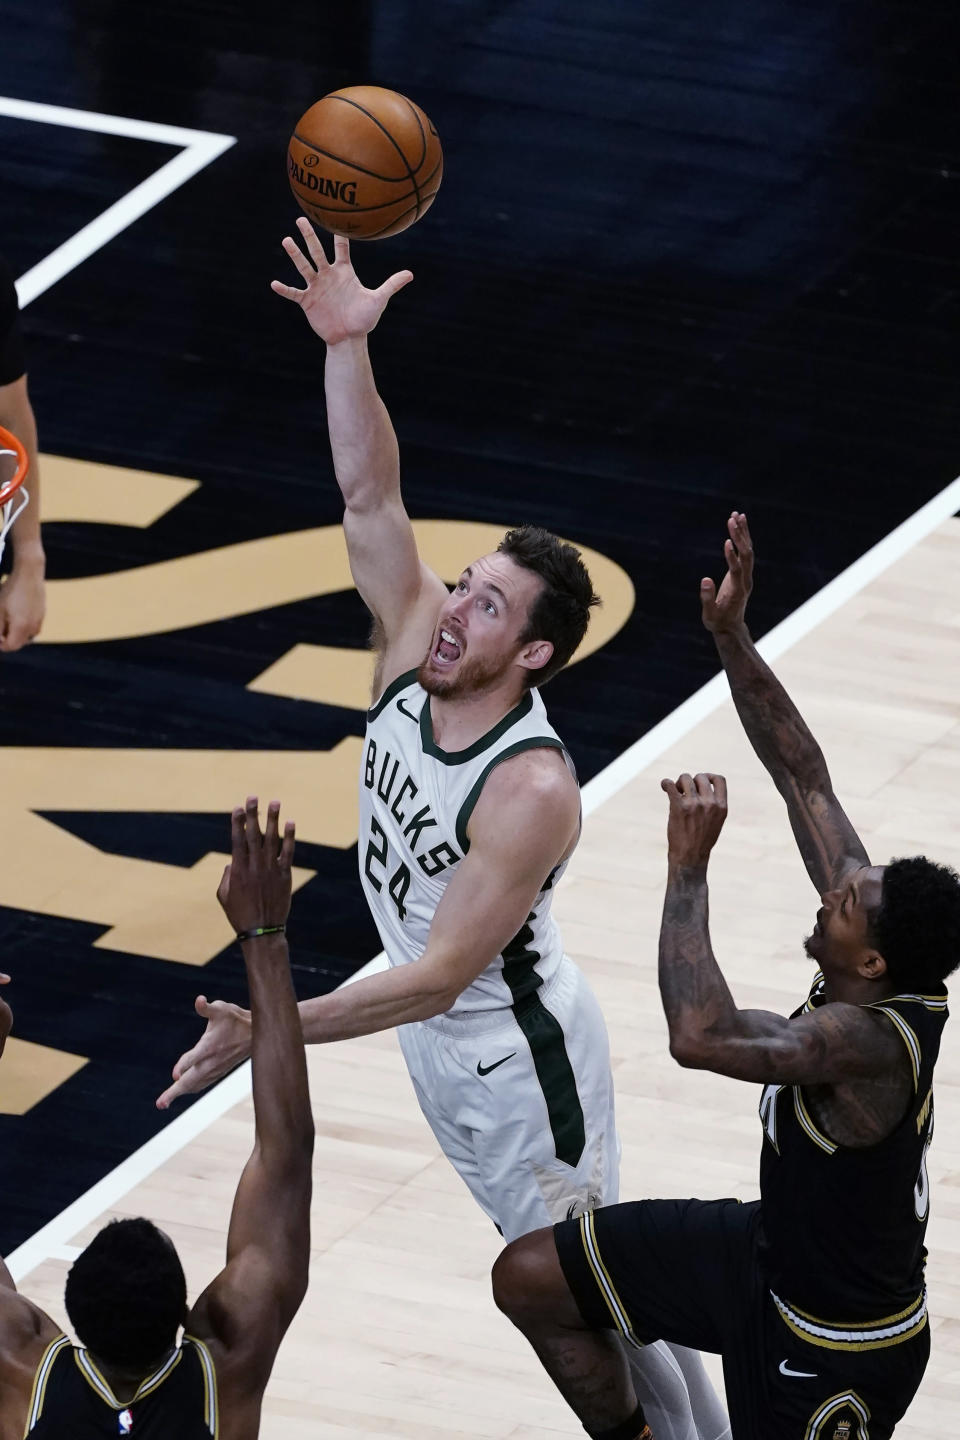 Milwaukee Bucks guard Pat Connaughton (24) goes in for a basket as Atlanta Hawks guard Lou Williams, right, defends during the first half of an NBA basketball game Thursday, April 15, 2021, in Atlanta. (AP Photo/John Bazemore)